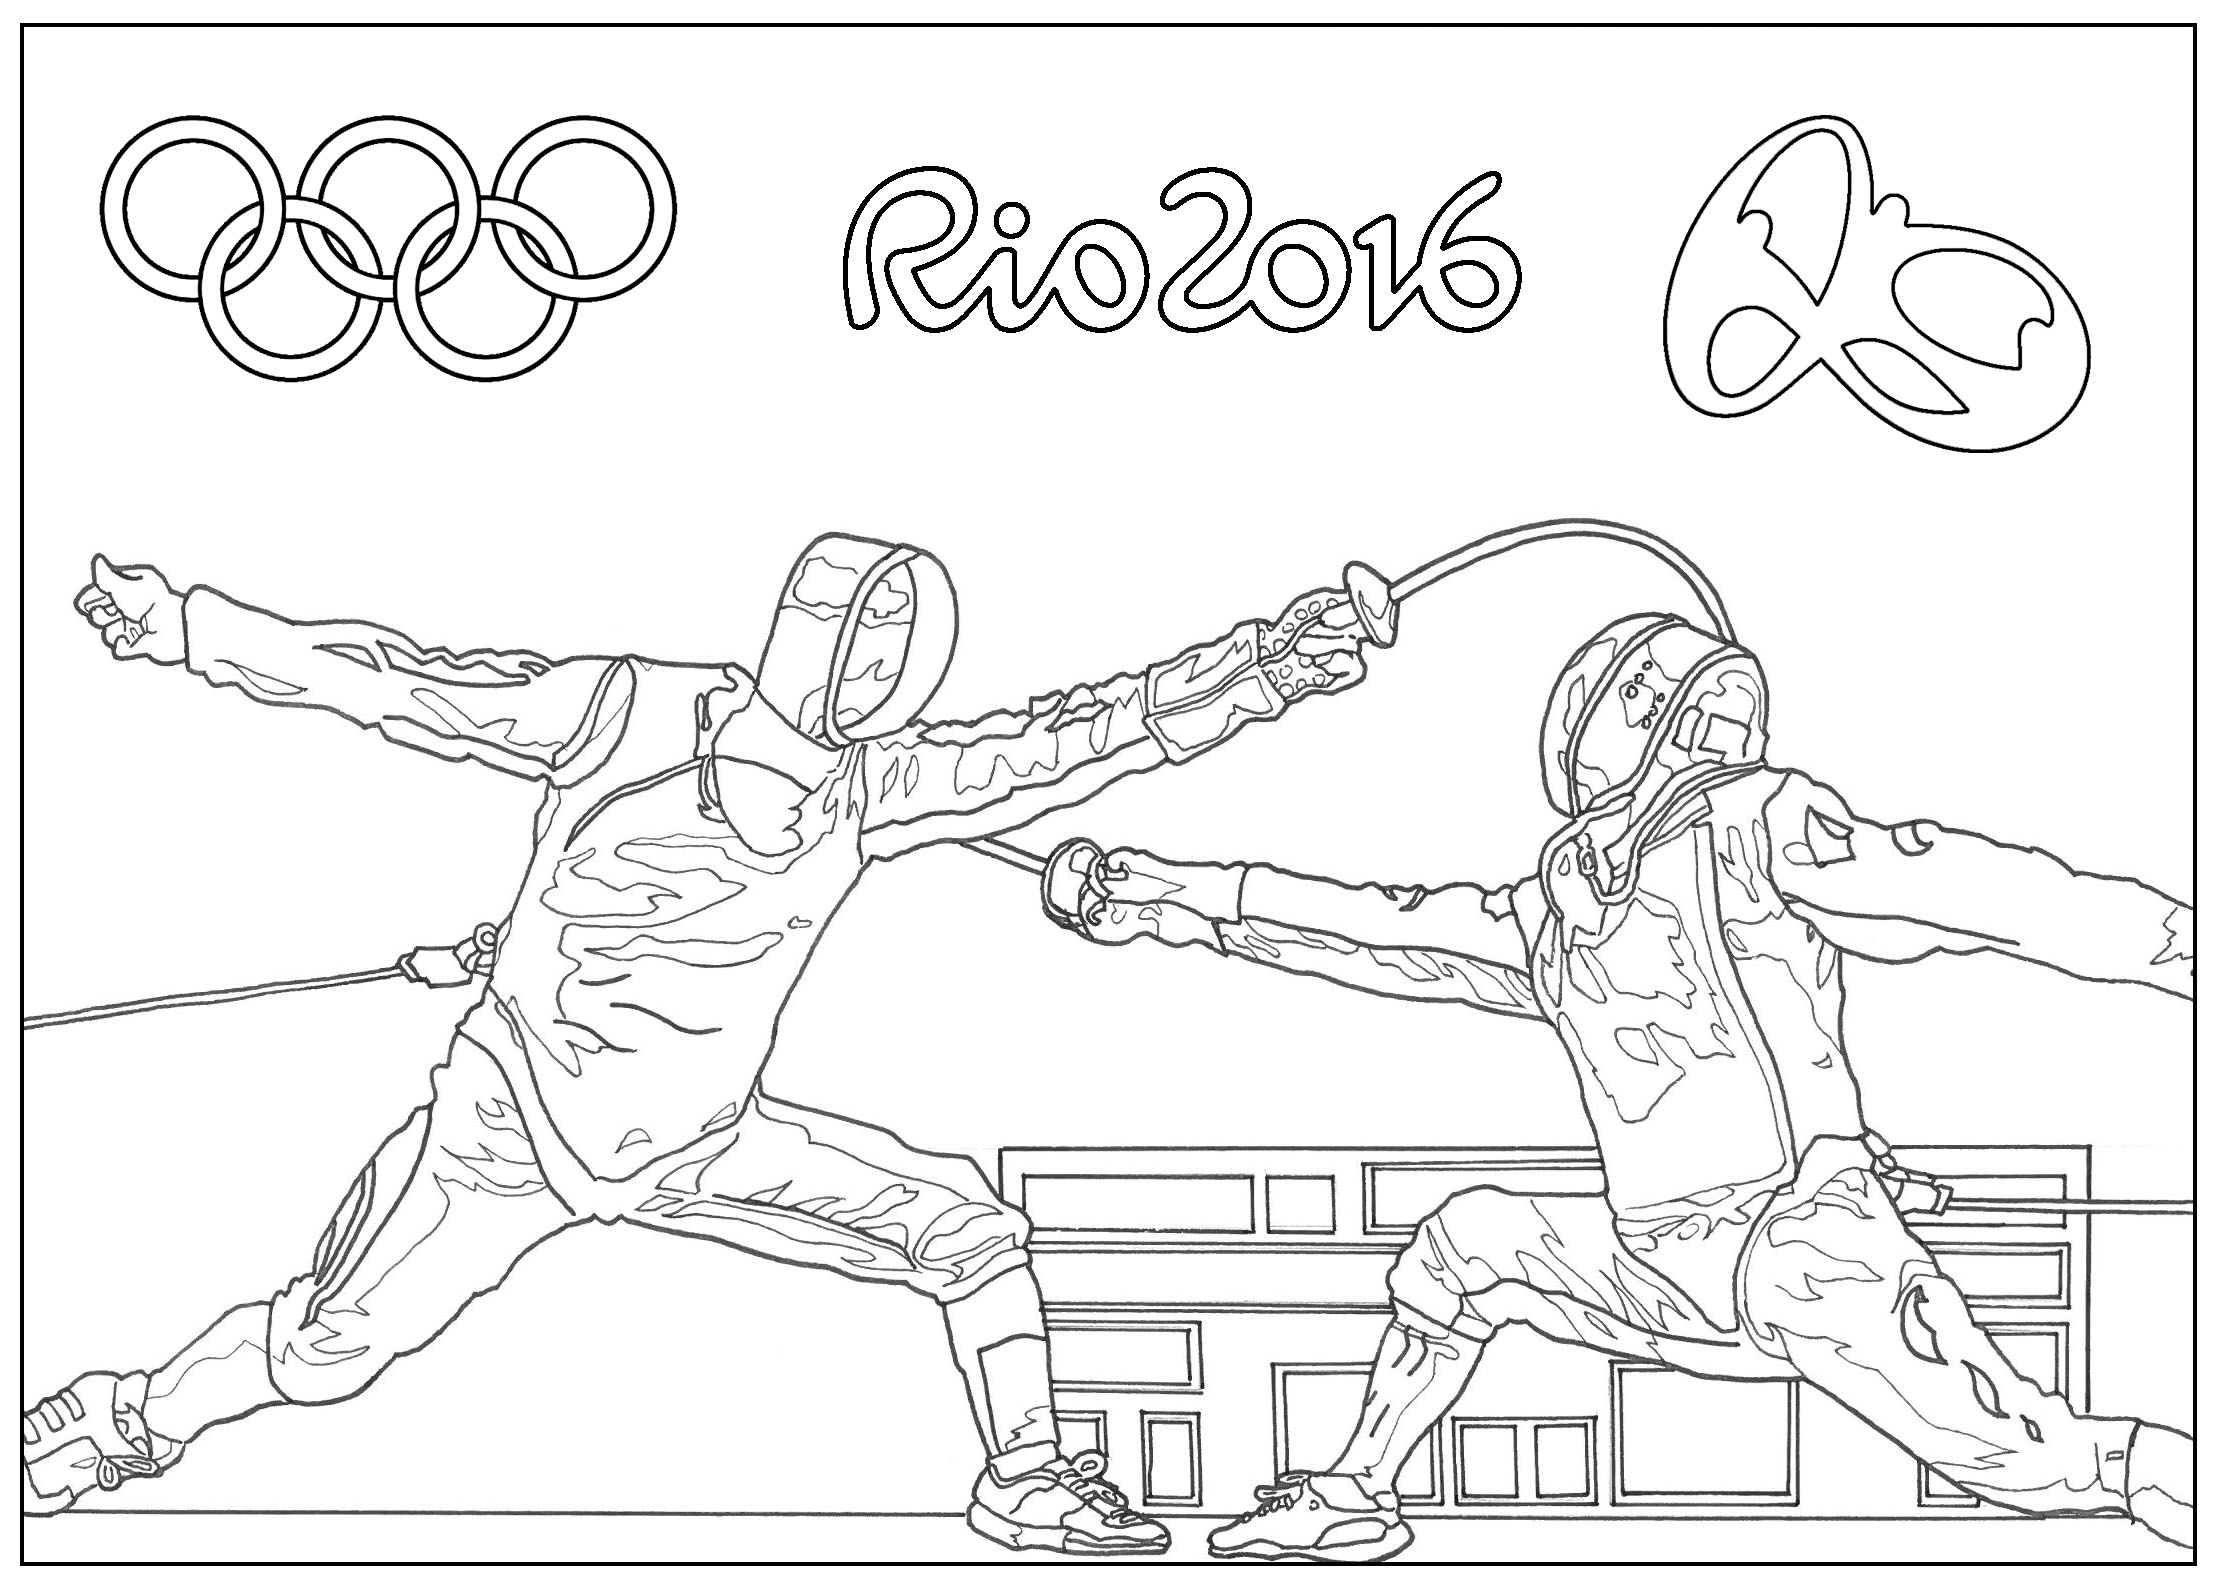 Special Olympics Coloring Pages To Print